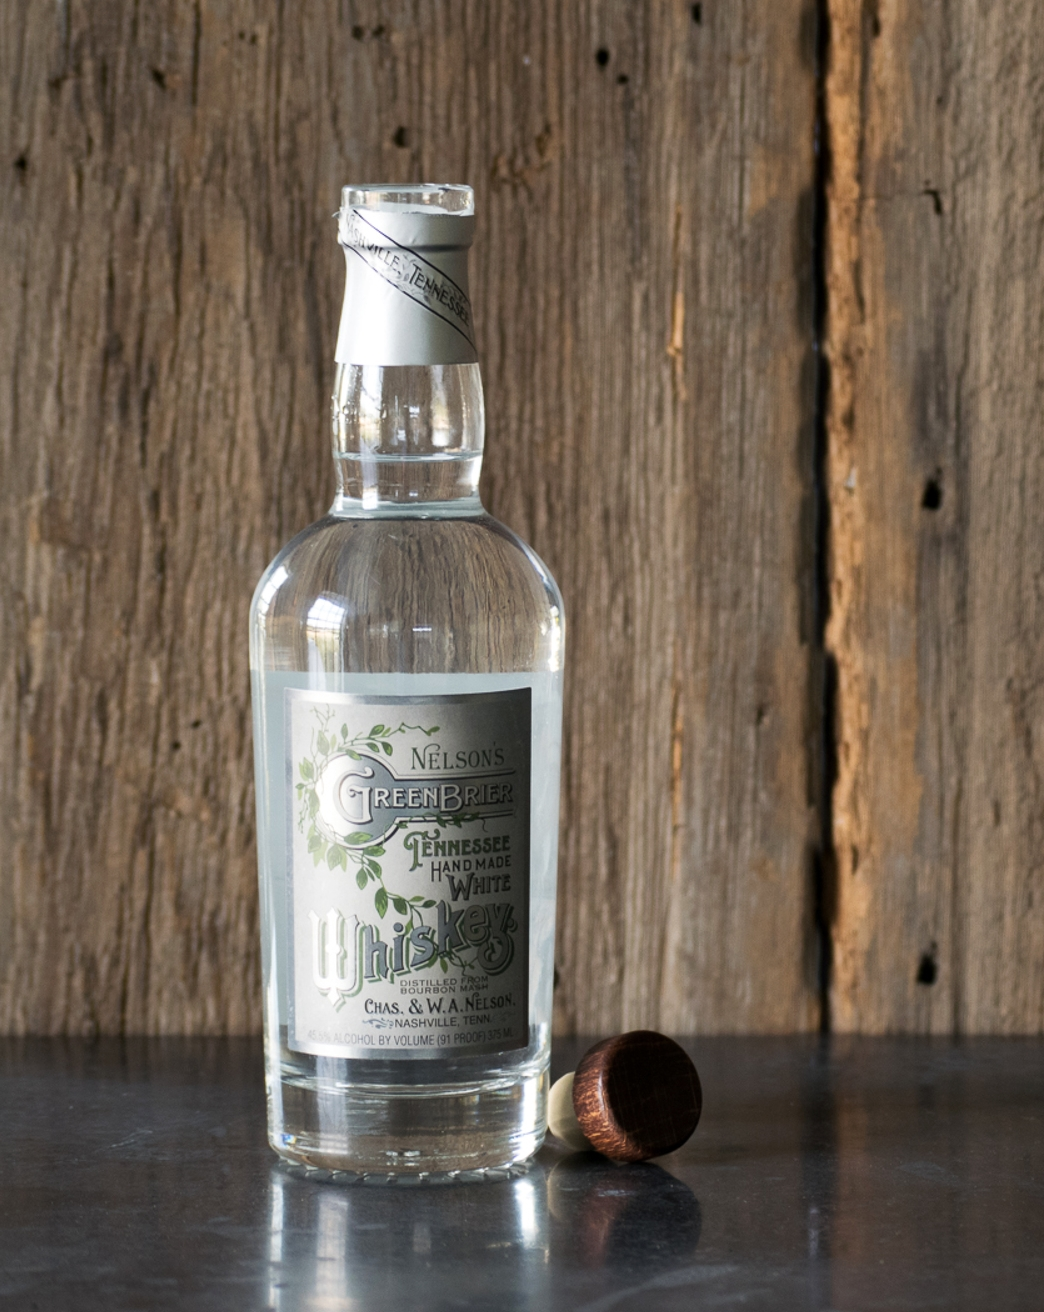 Nelson's Green Brier Distillery Tennessee White Whiskey